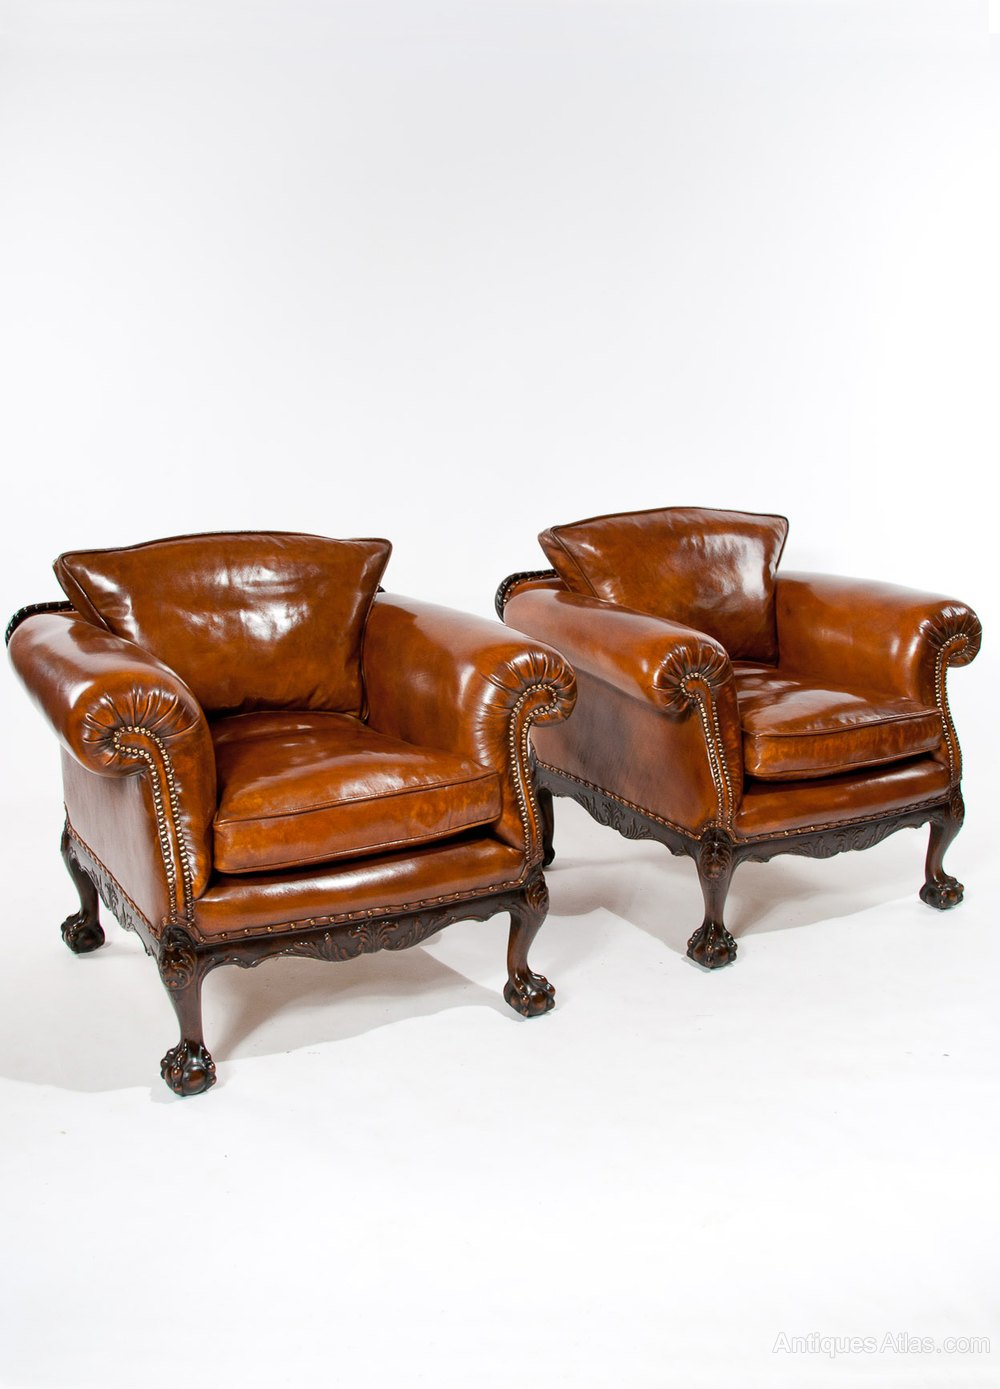 A Wonderful Pair Of Antique Leather Armchairs Antiques Atlas